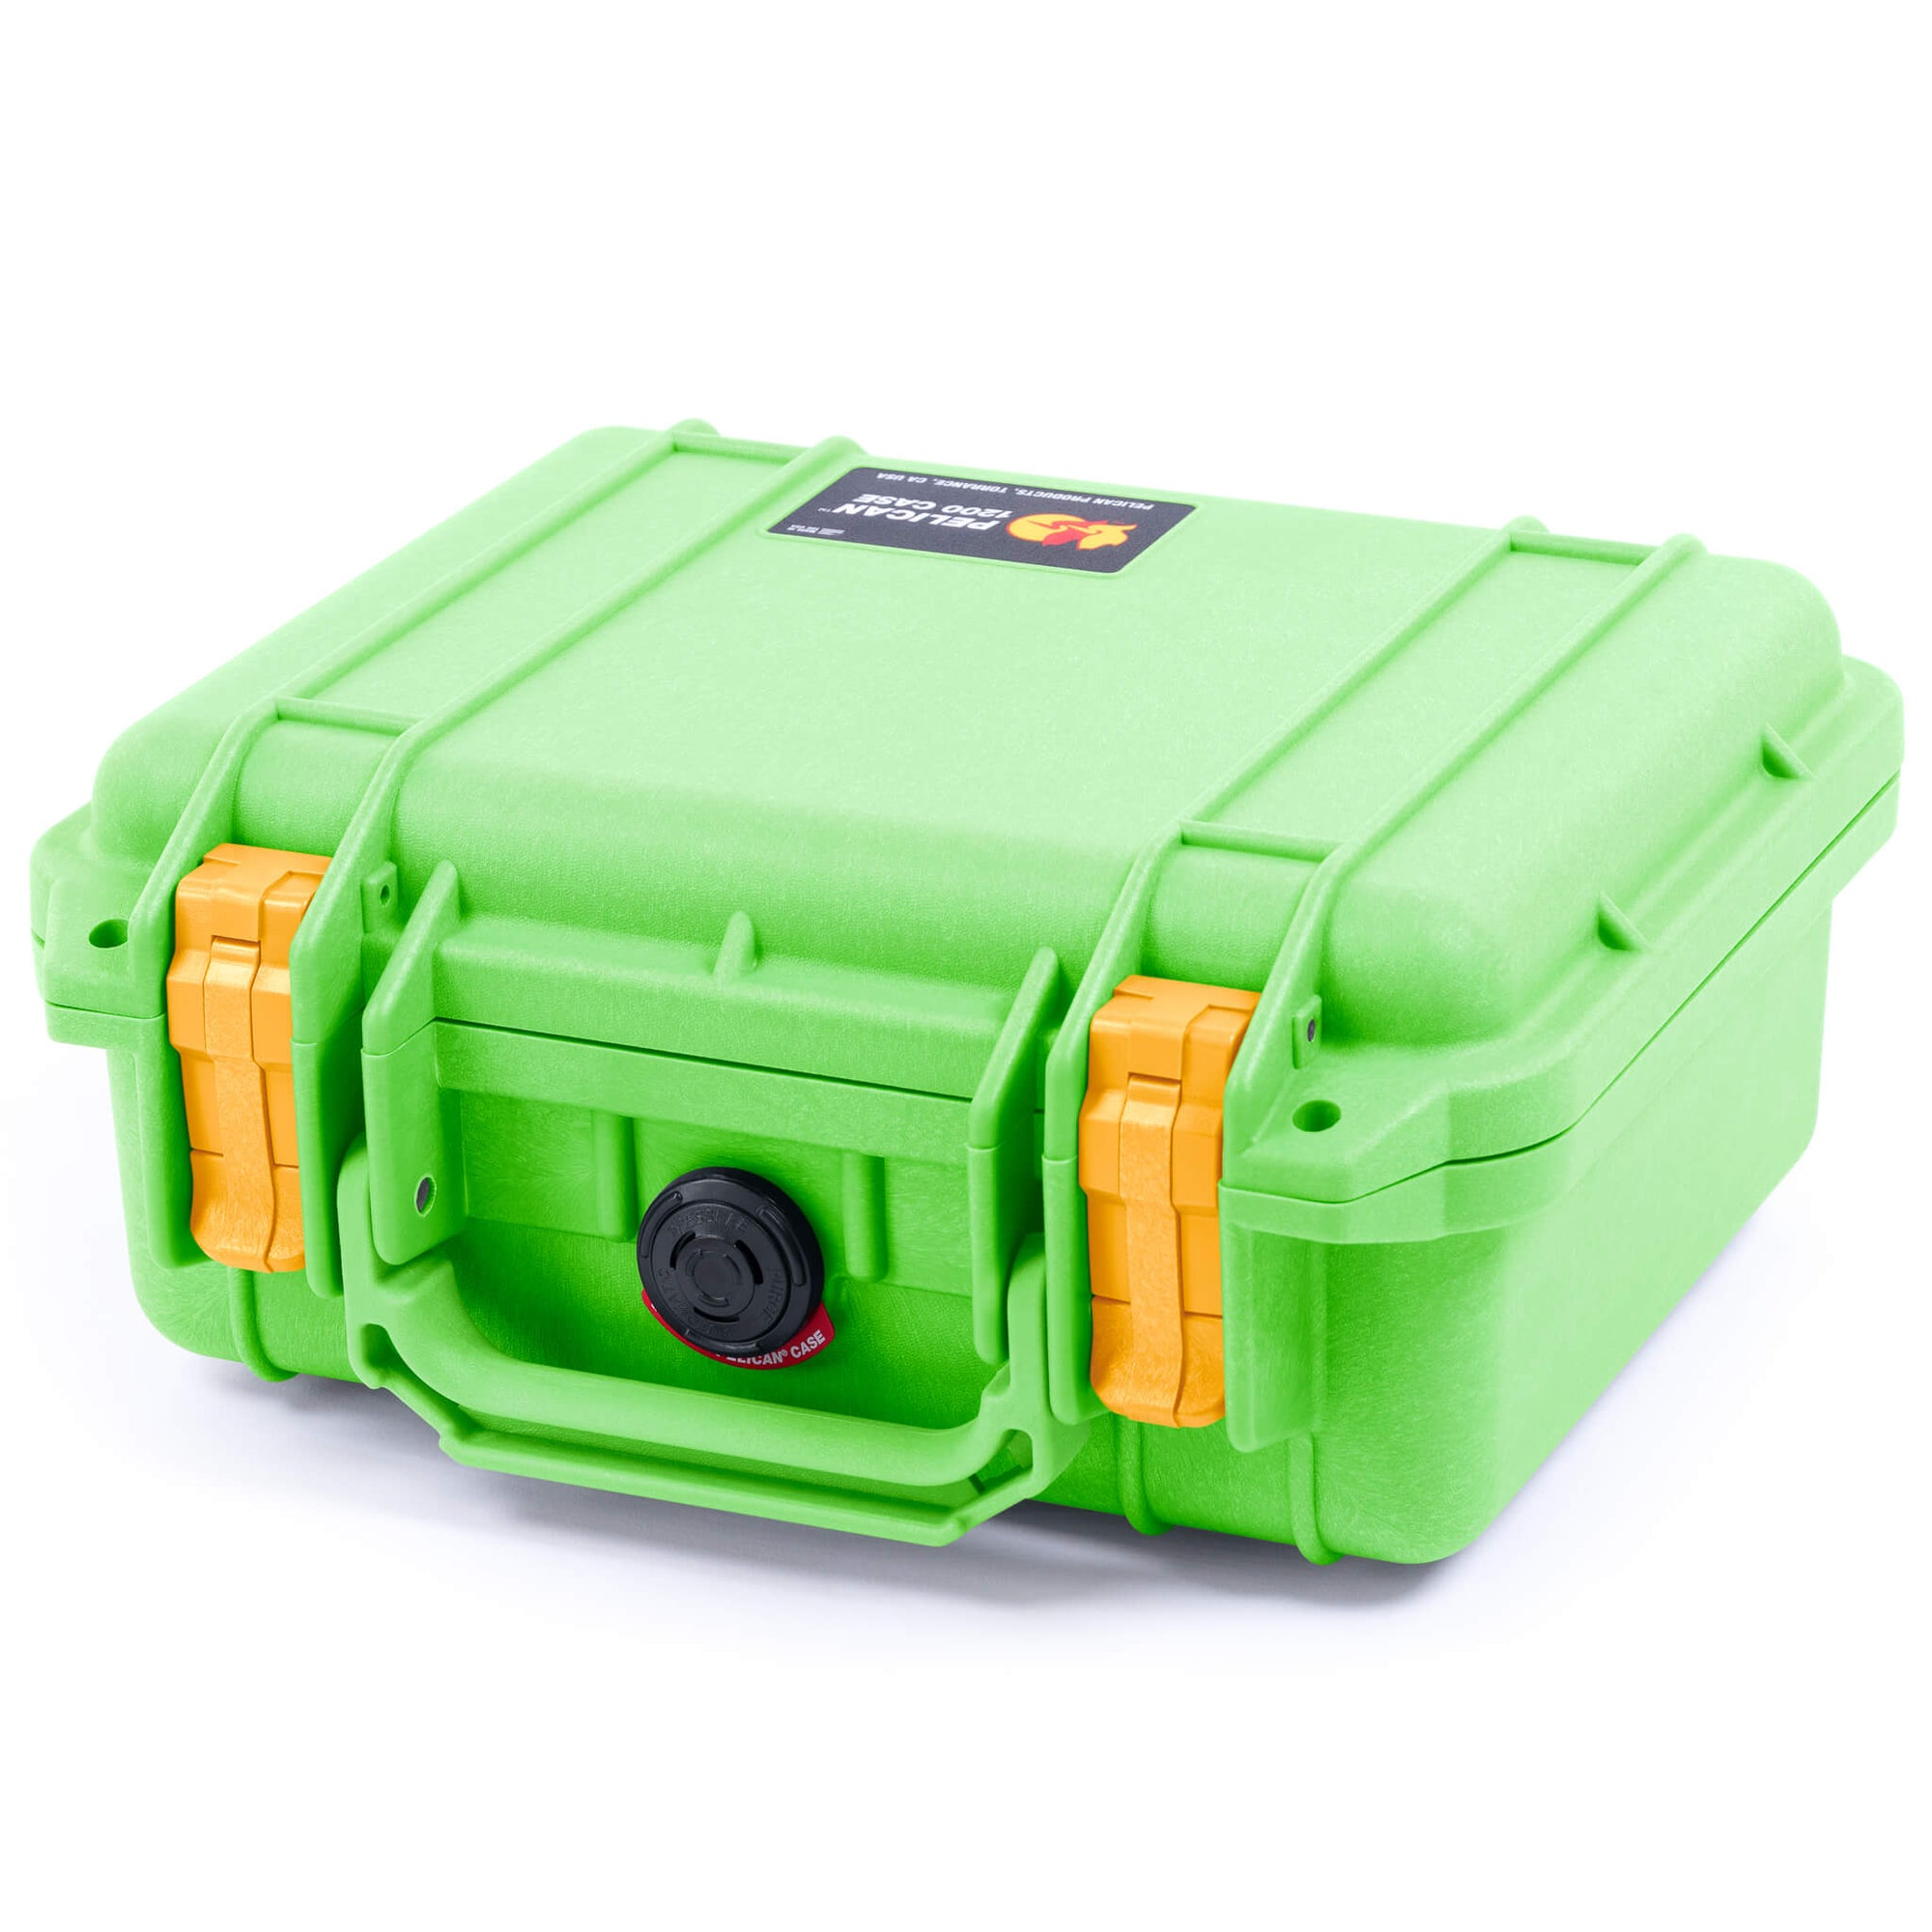 Pelican 1200 Case, Lime Green with Yellow Handle & Latches - Pelican Color Case